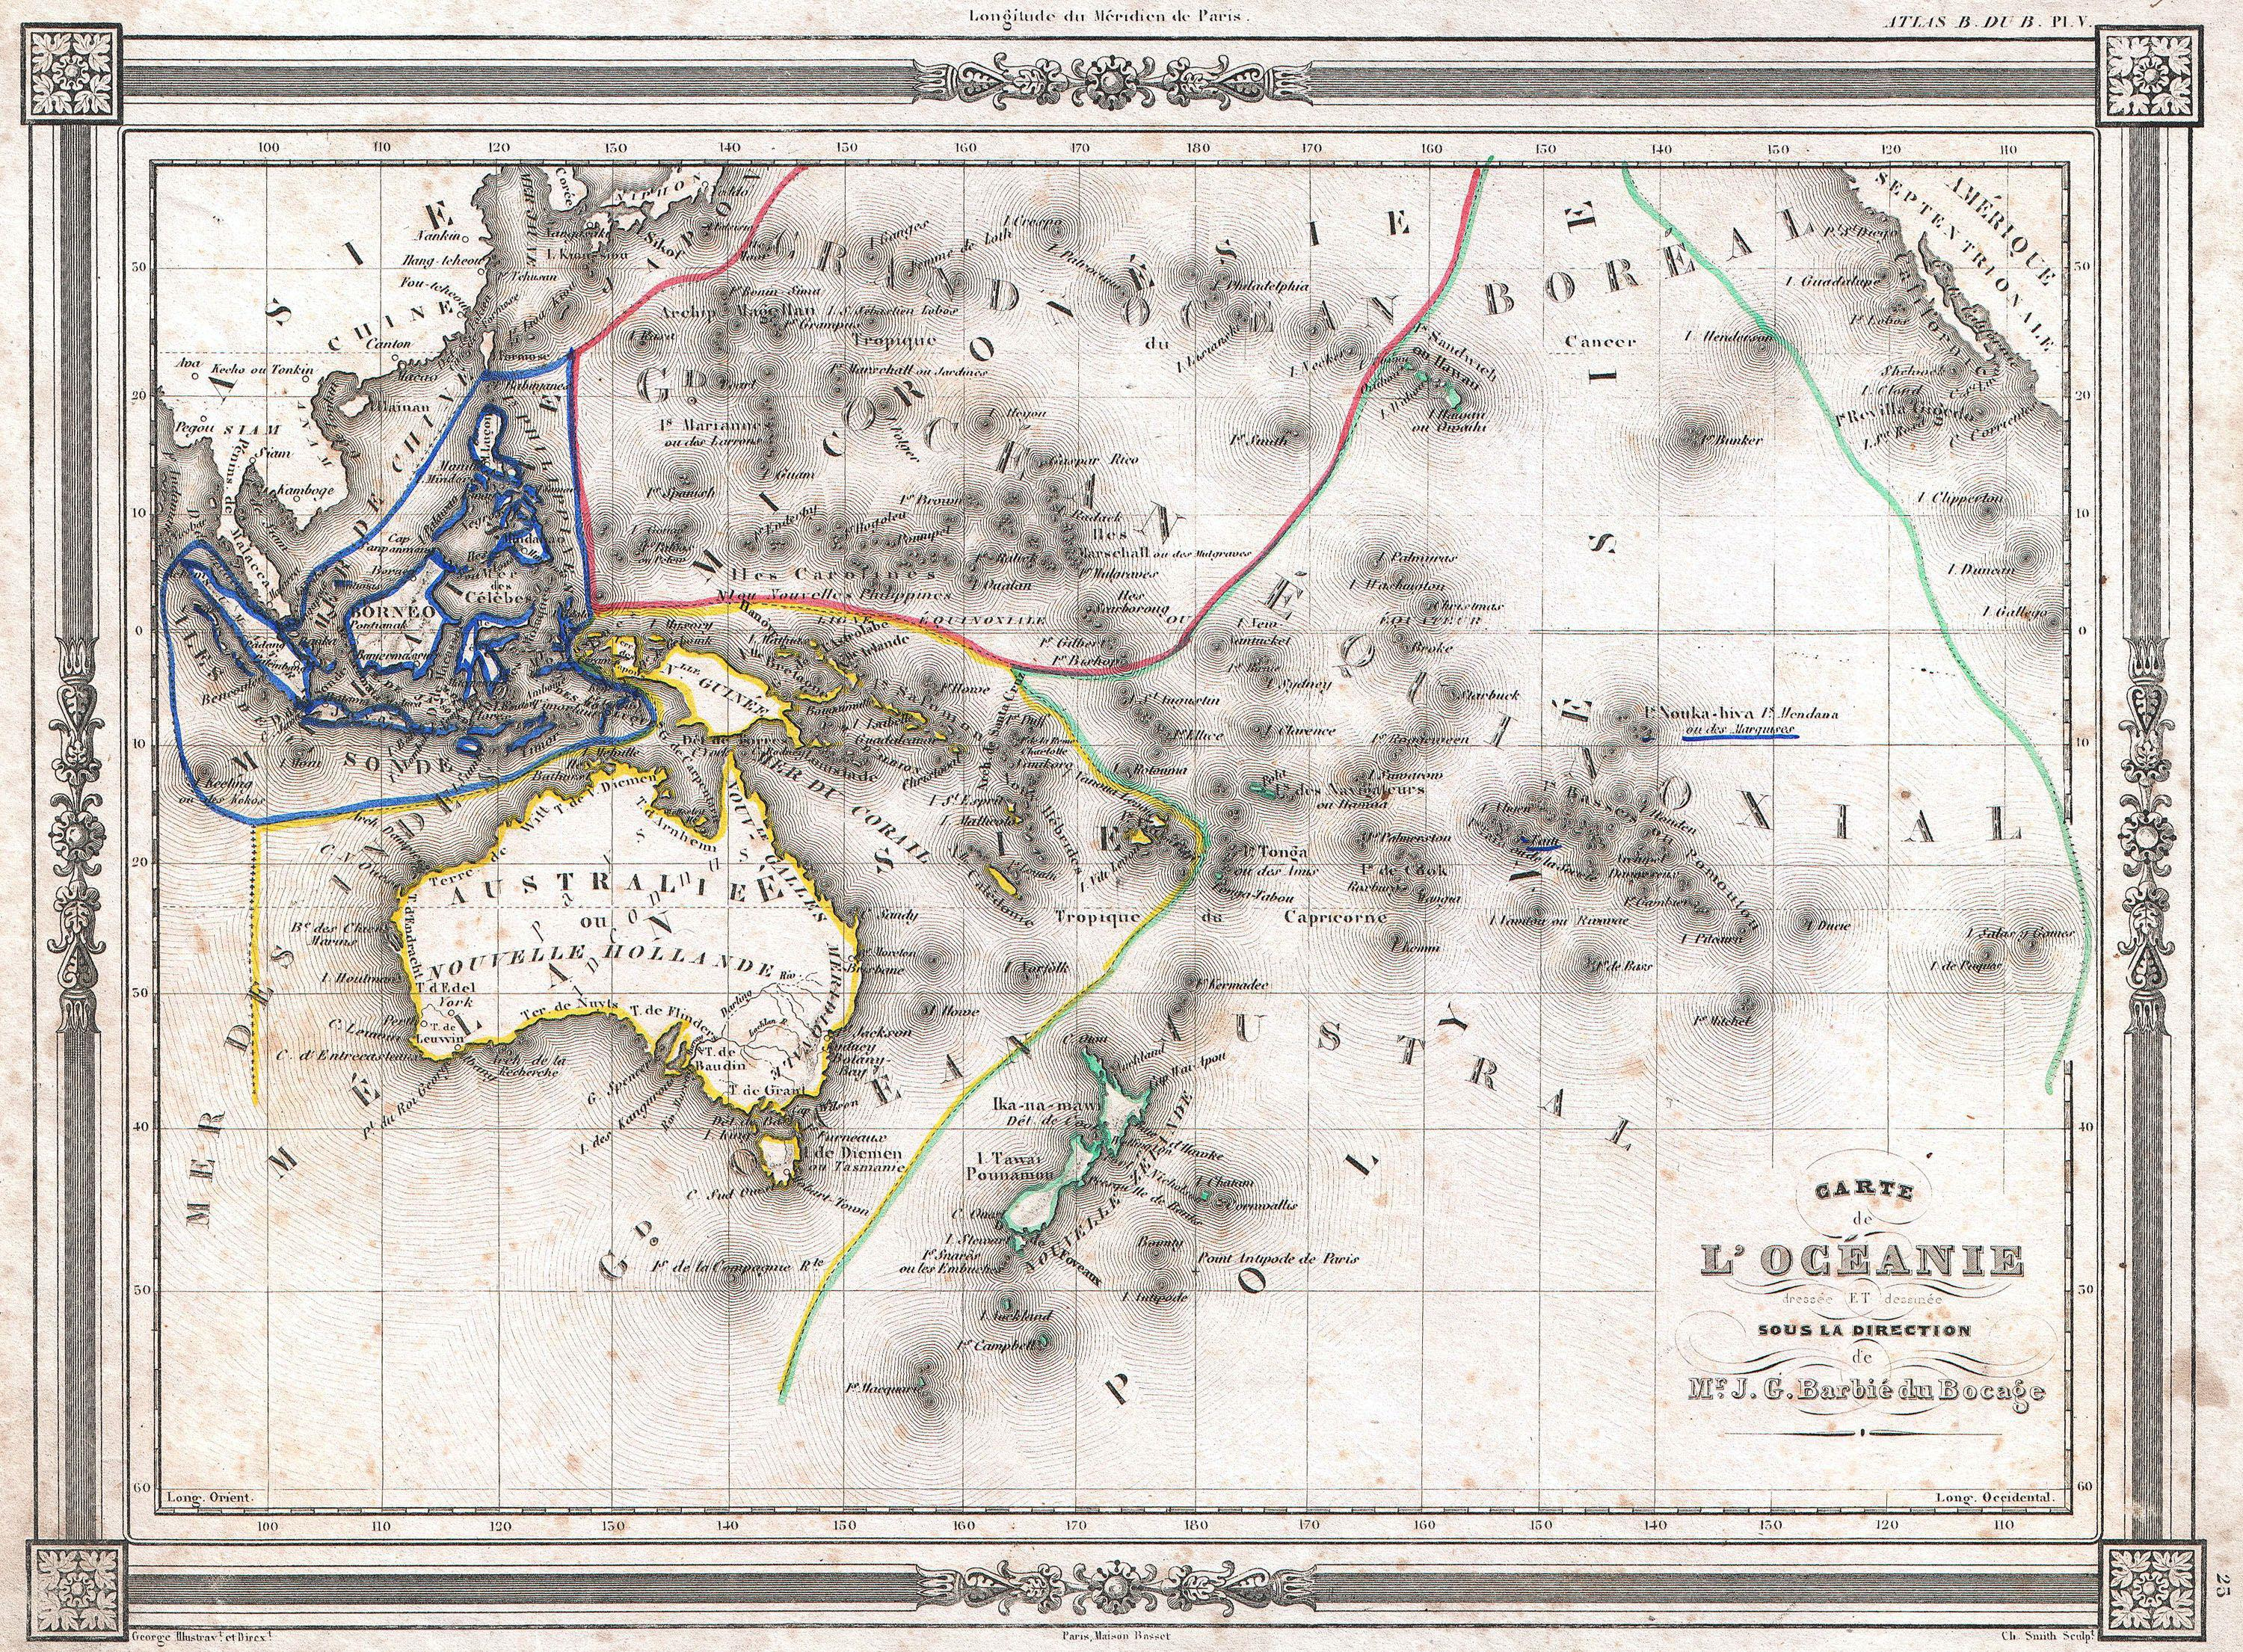 Labeled+map+of+australia+and+oceania